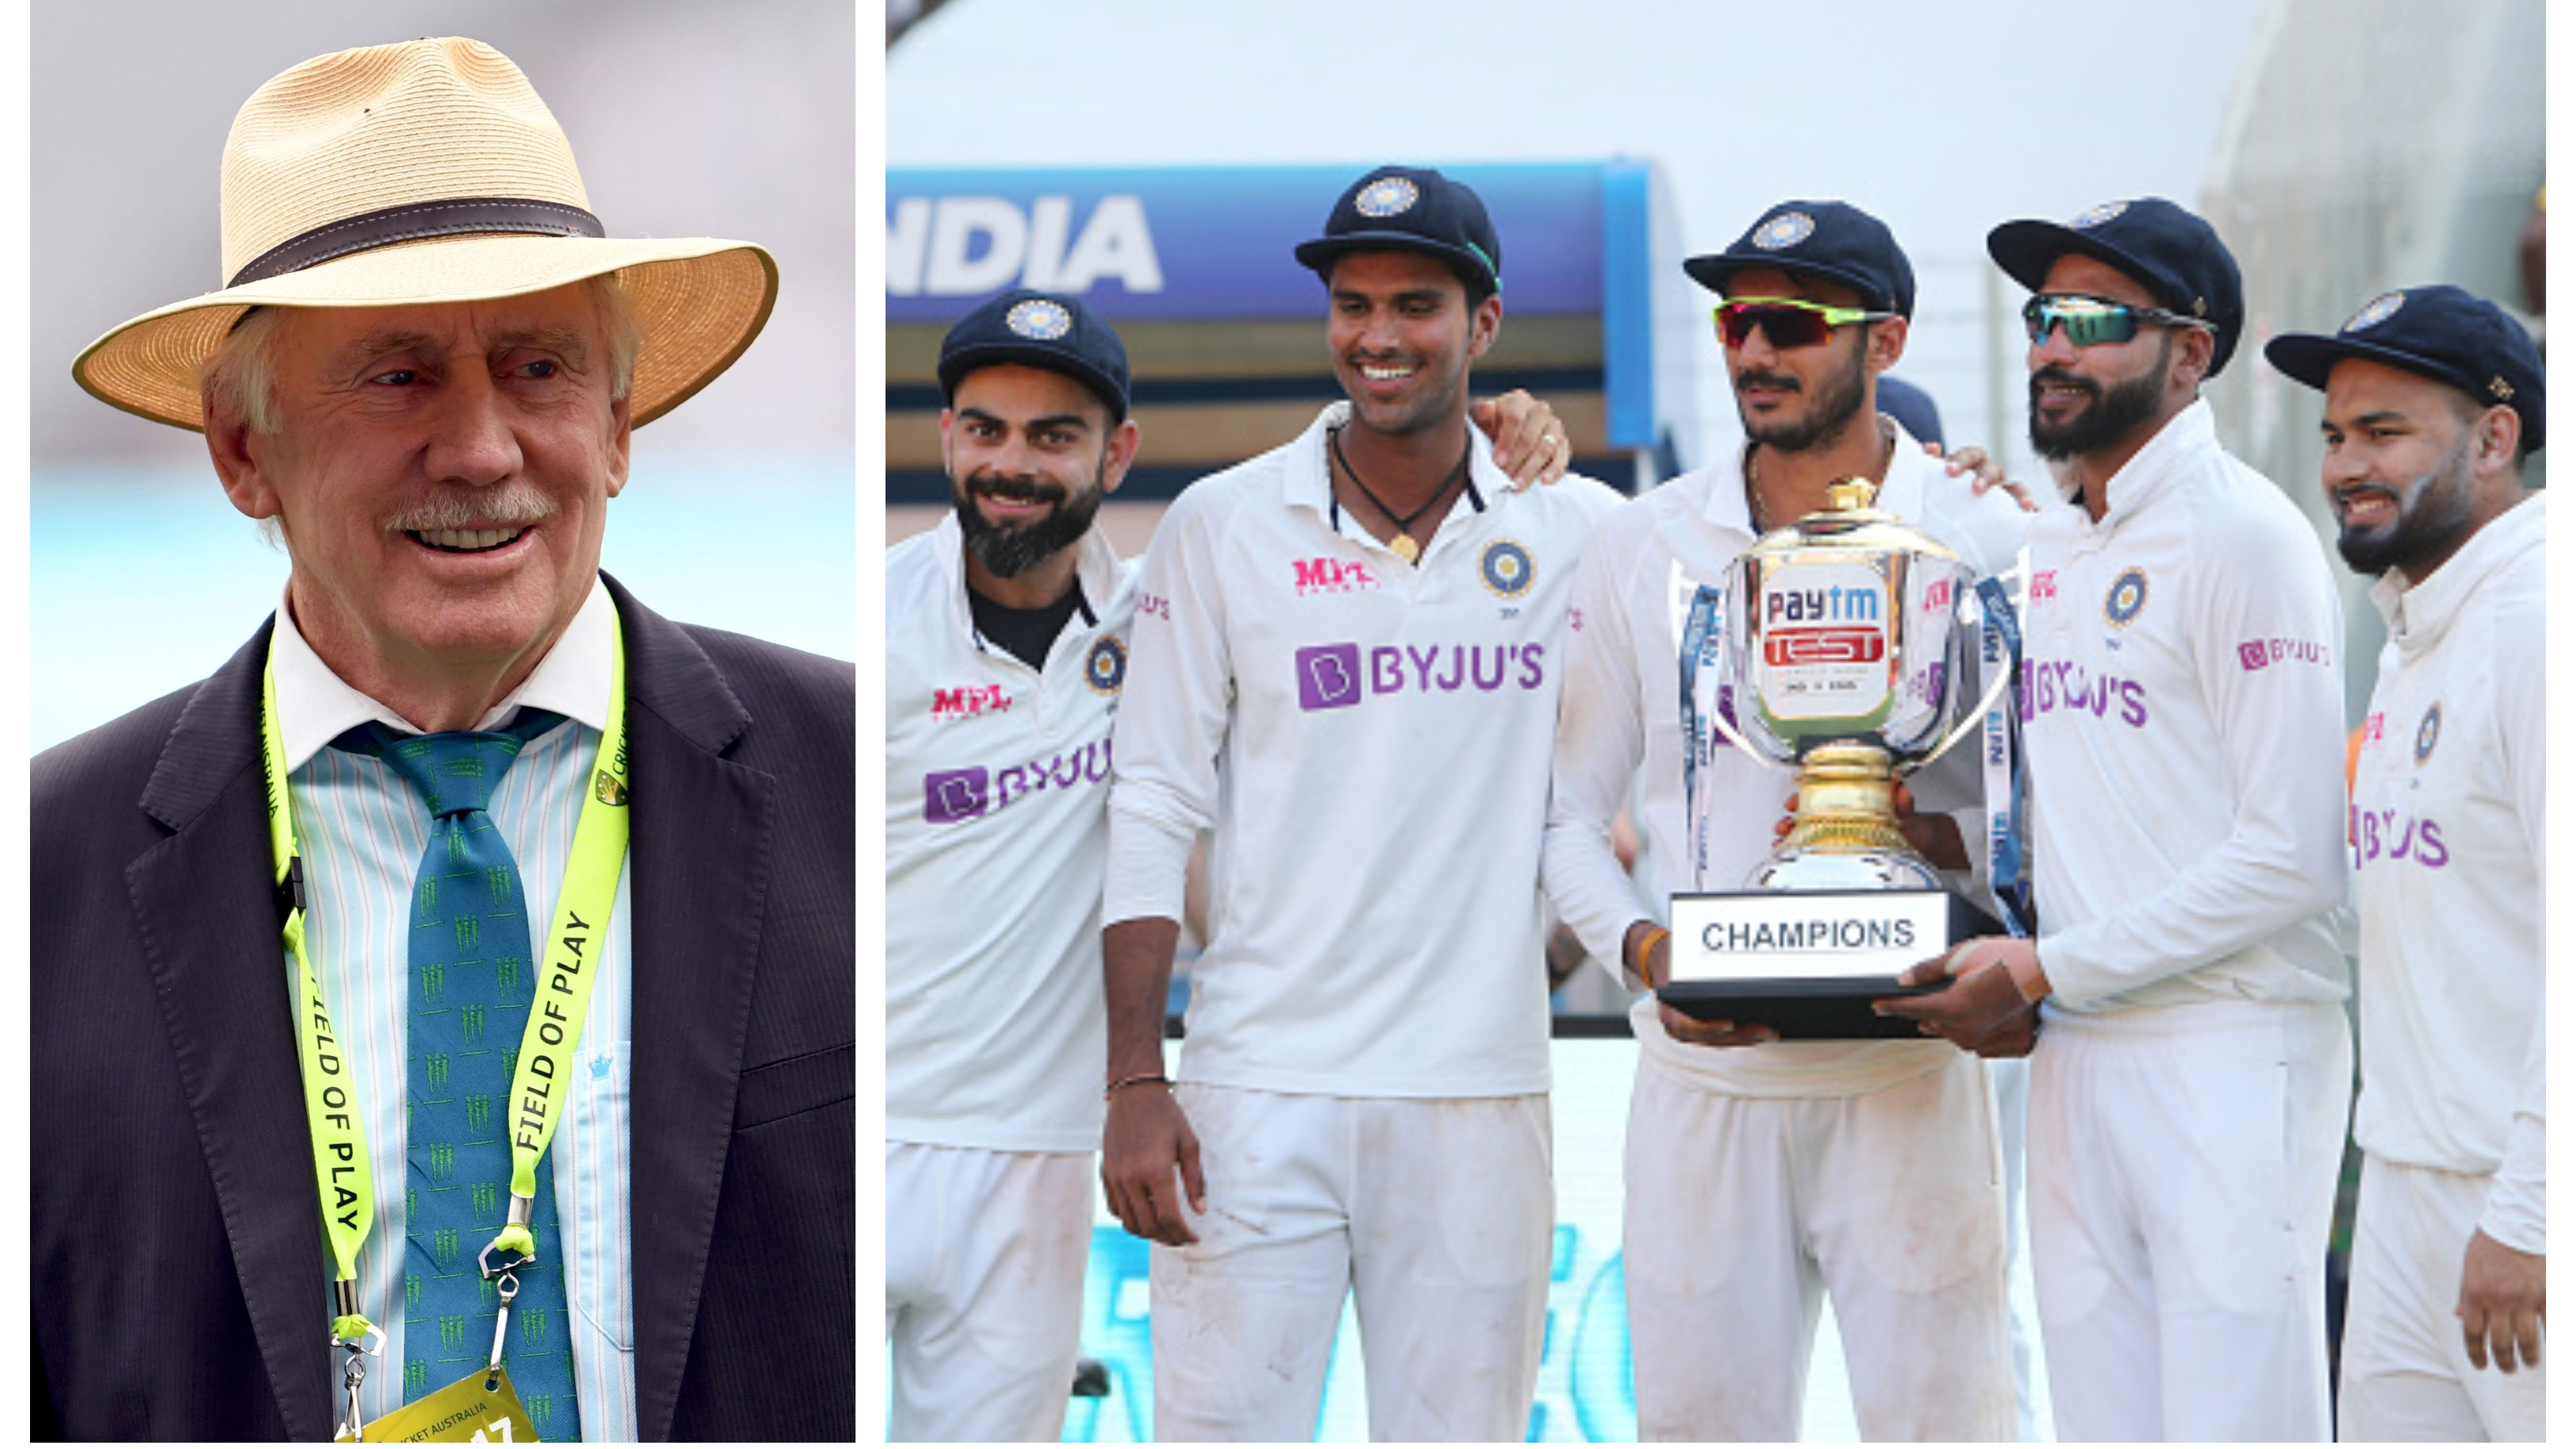 Ian Chappell expects India to replicate dominance of West Indies and Australia's past teams